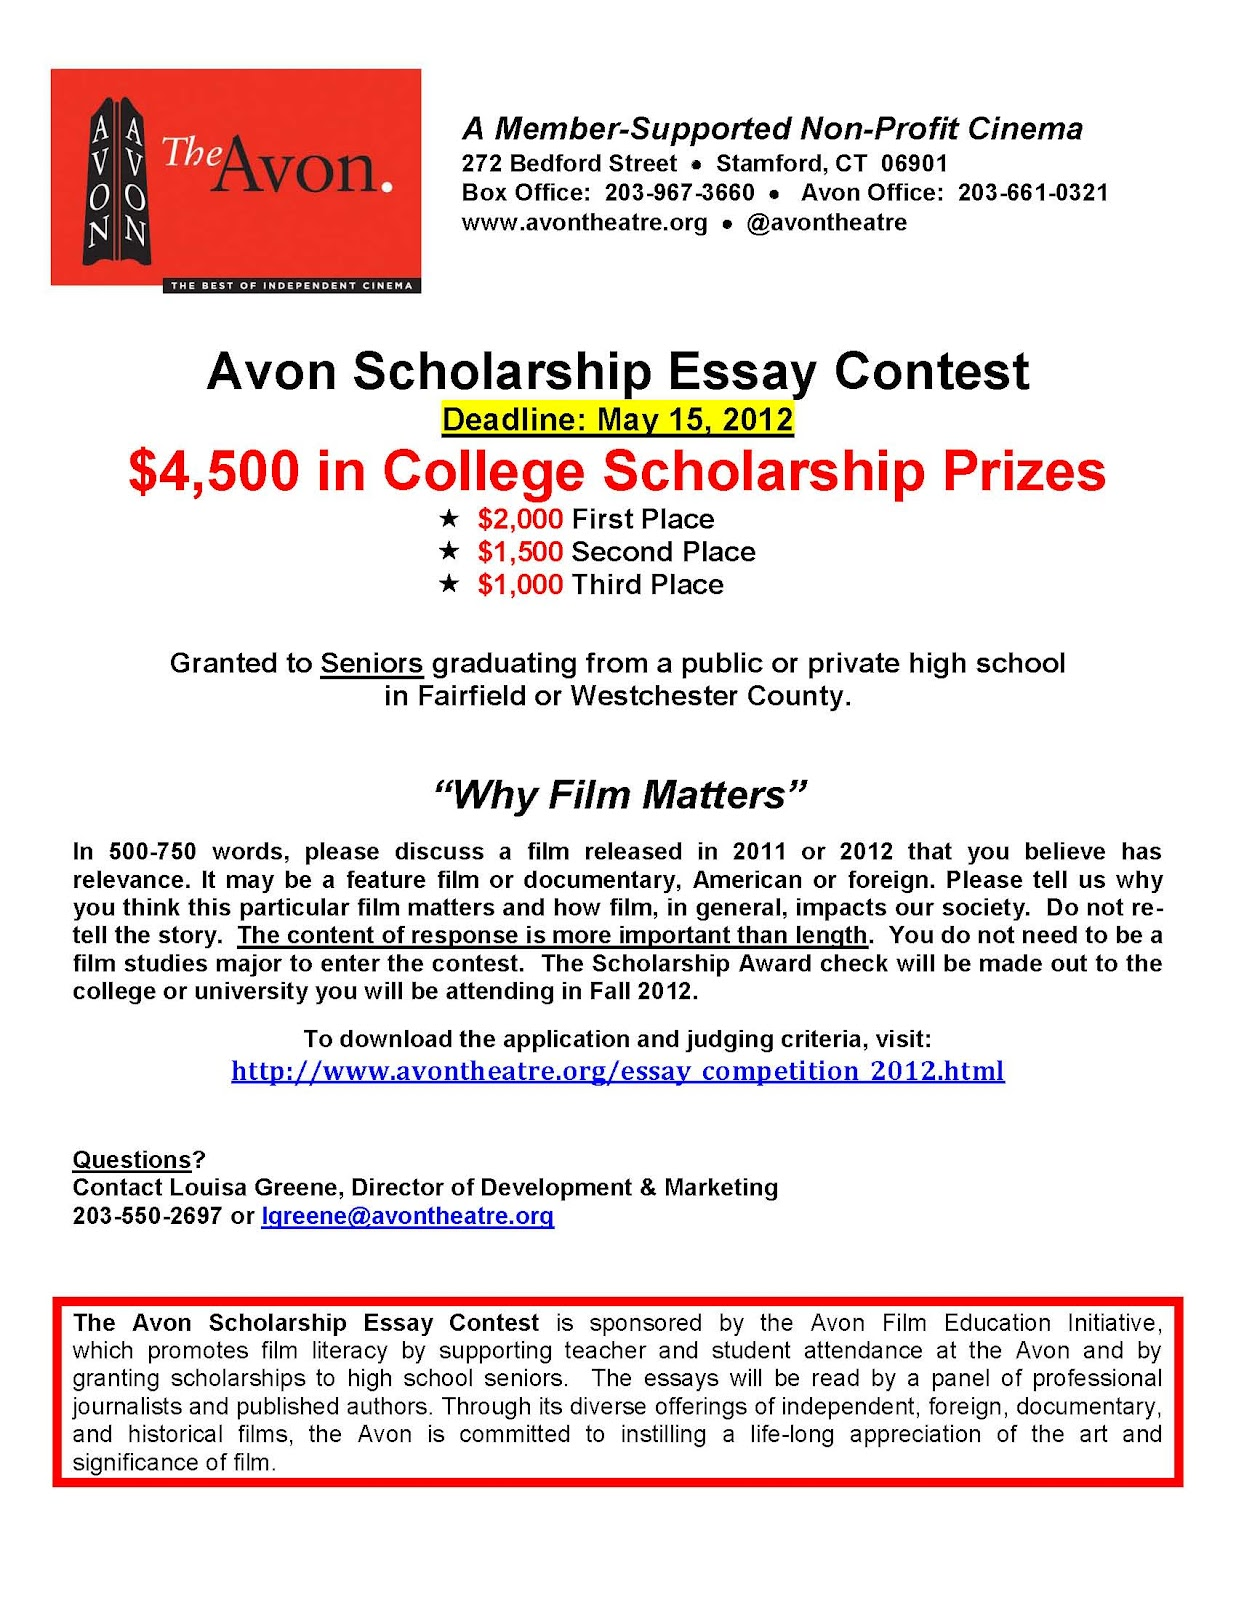 004 Essay Example No College Scholarships Scholarship Prowler Free For High School Seniors Avonscholarshipessaycontest2012 In Texas California Class Of Imposing Students Legit Full